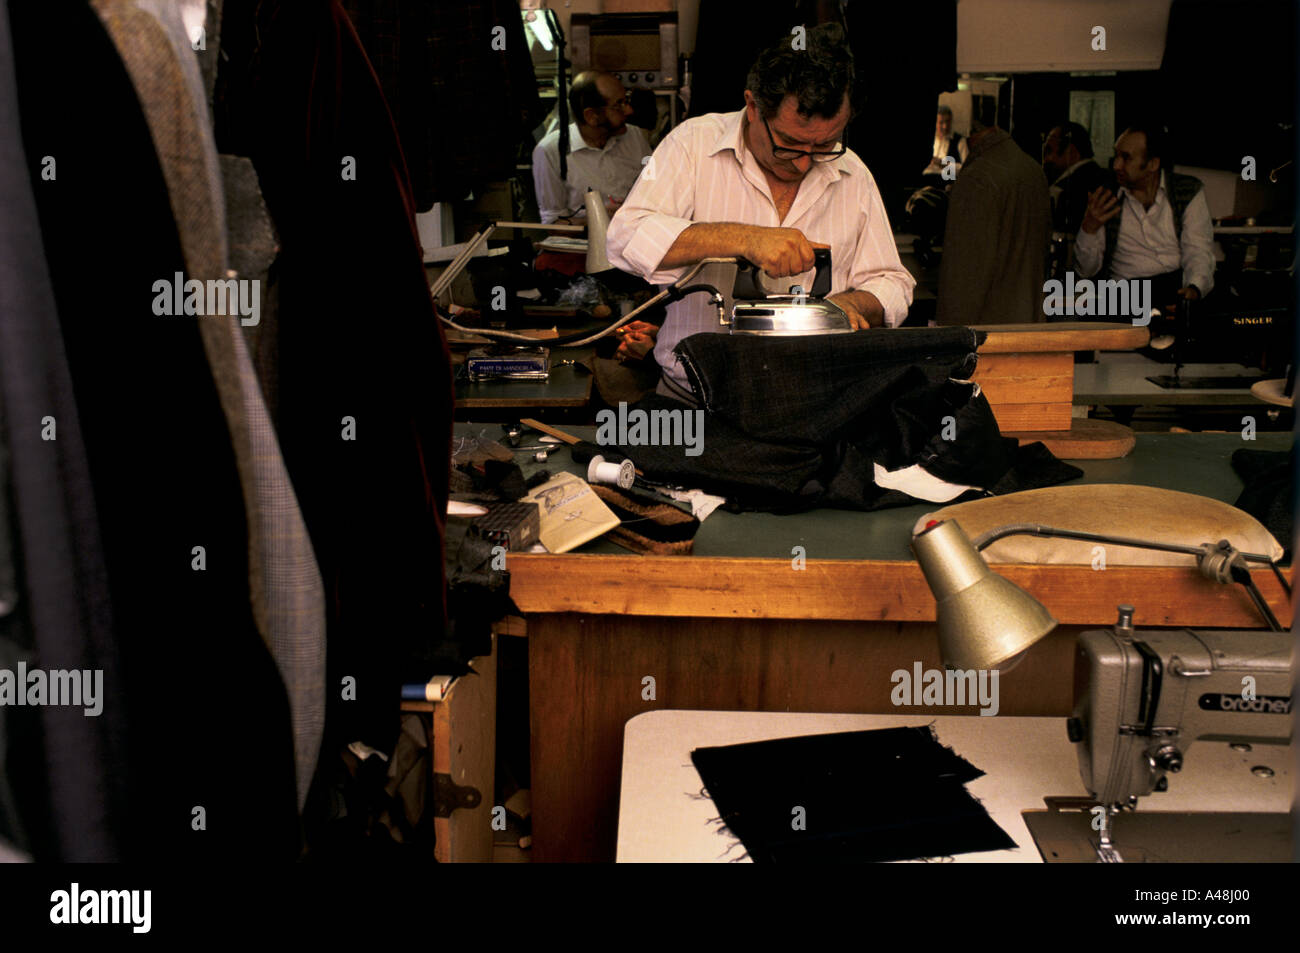 saville row tailor in his shop and workshop - Stock Image